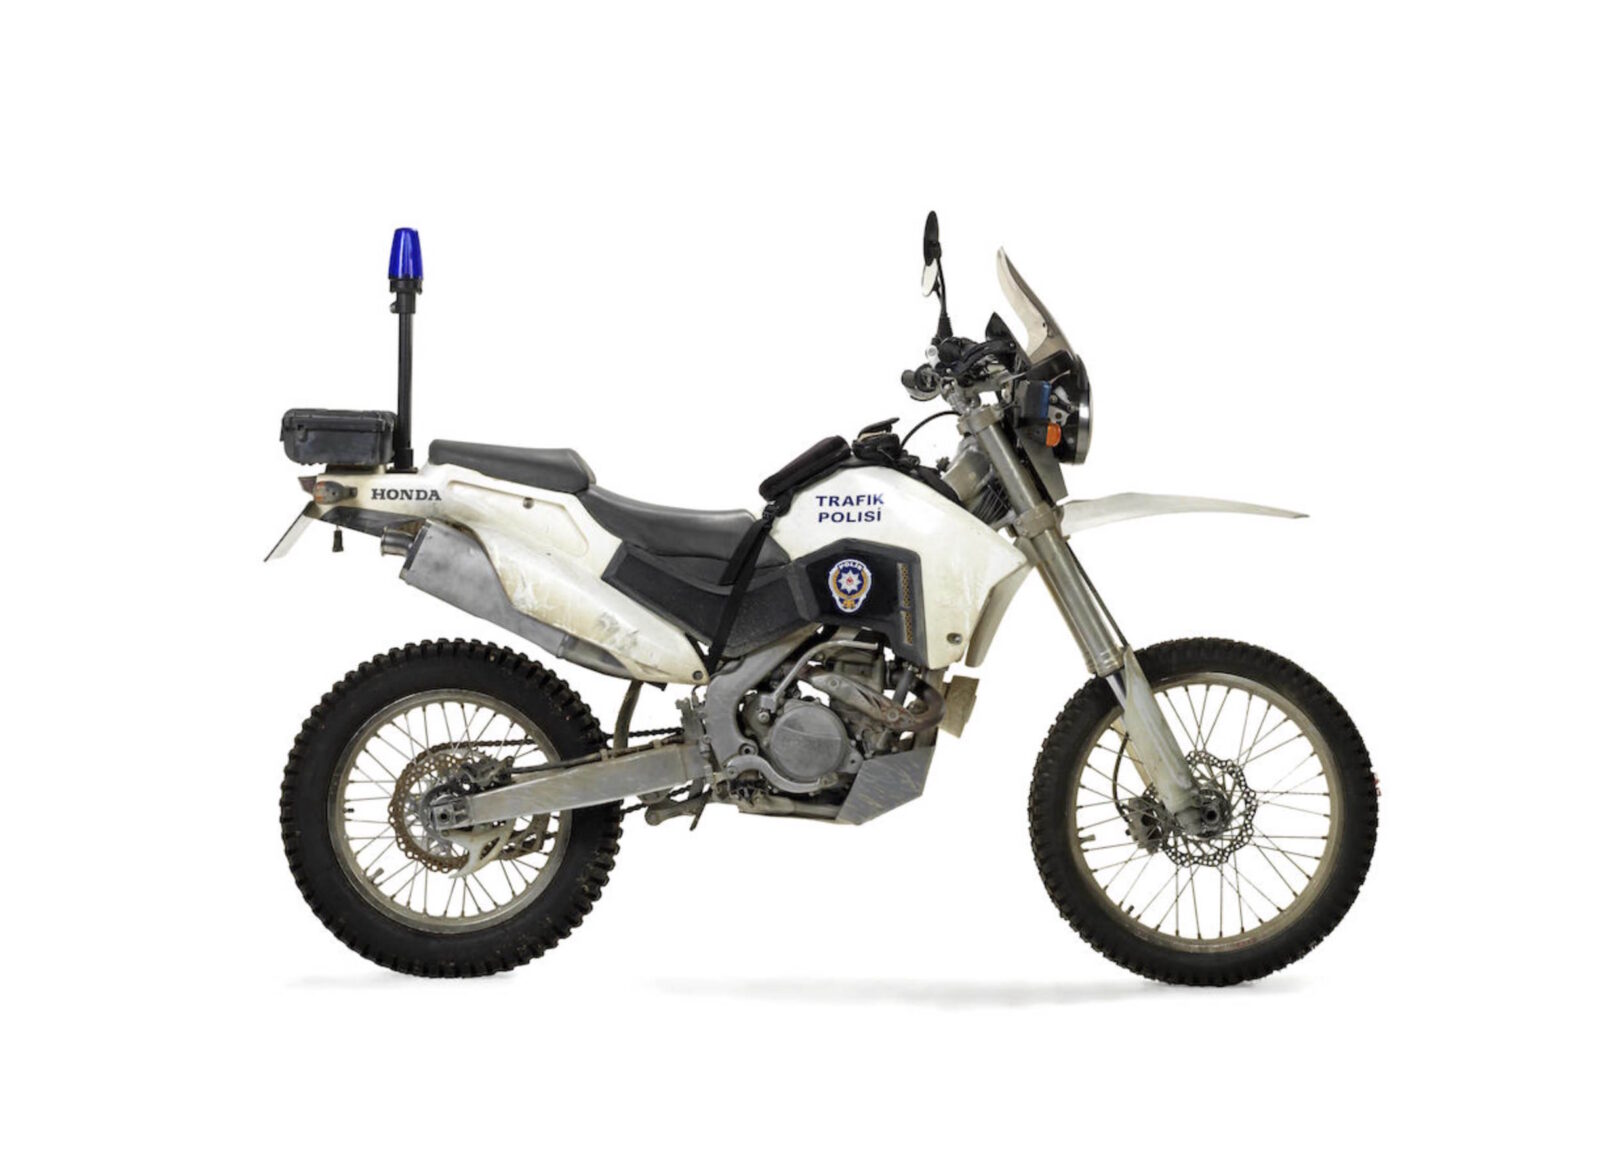 Honda CRF250R Motorcycle Skyfall James Bond 1600x1153